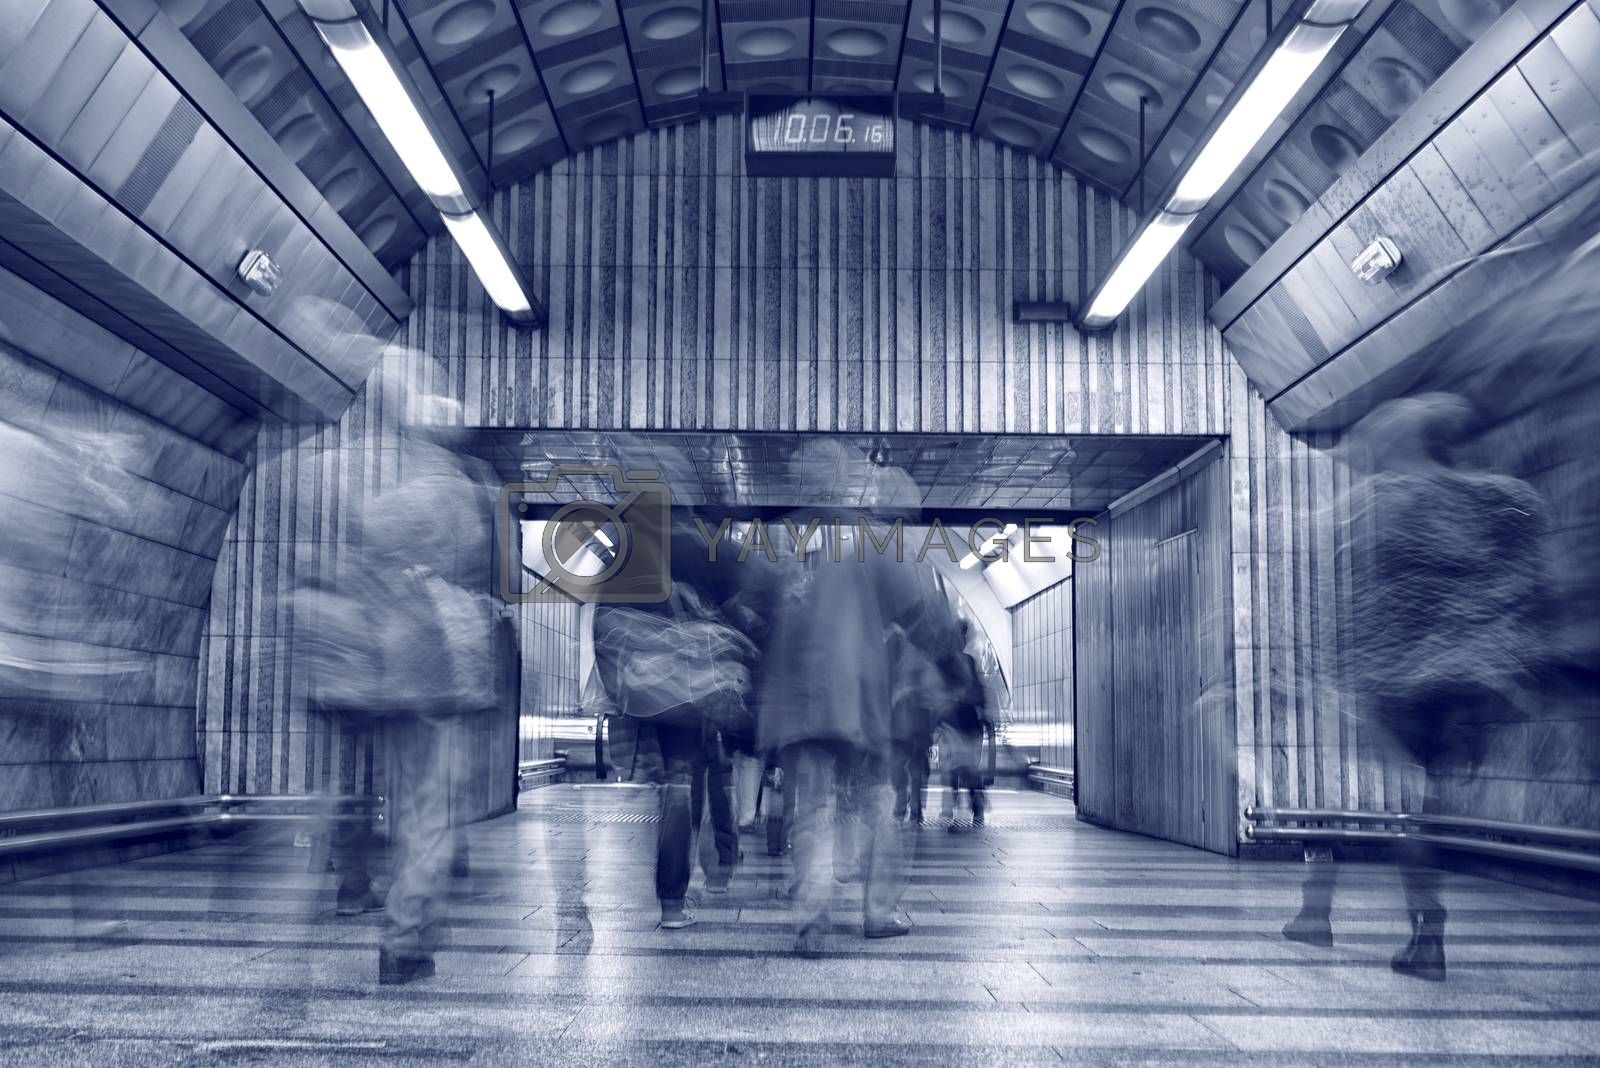 fast moving people at subway train station, long exposure image